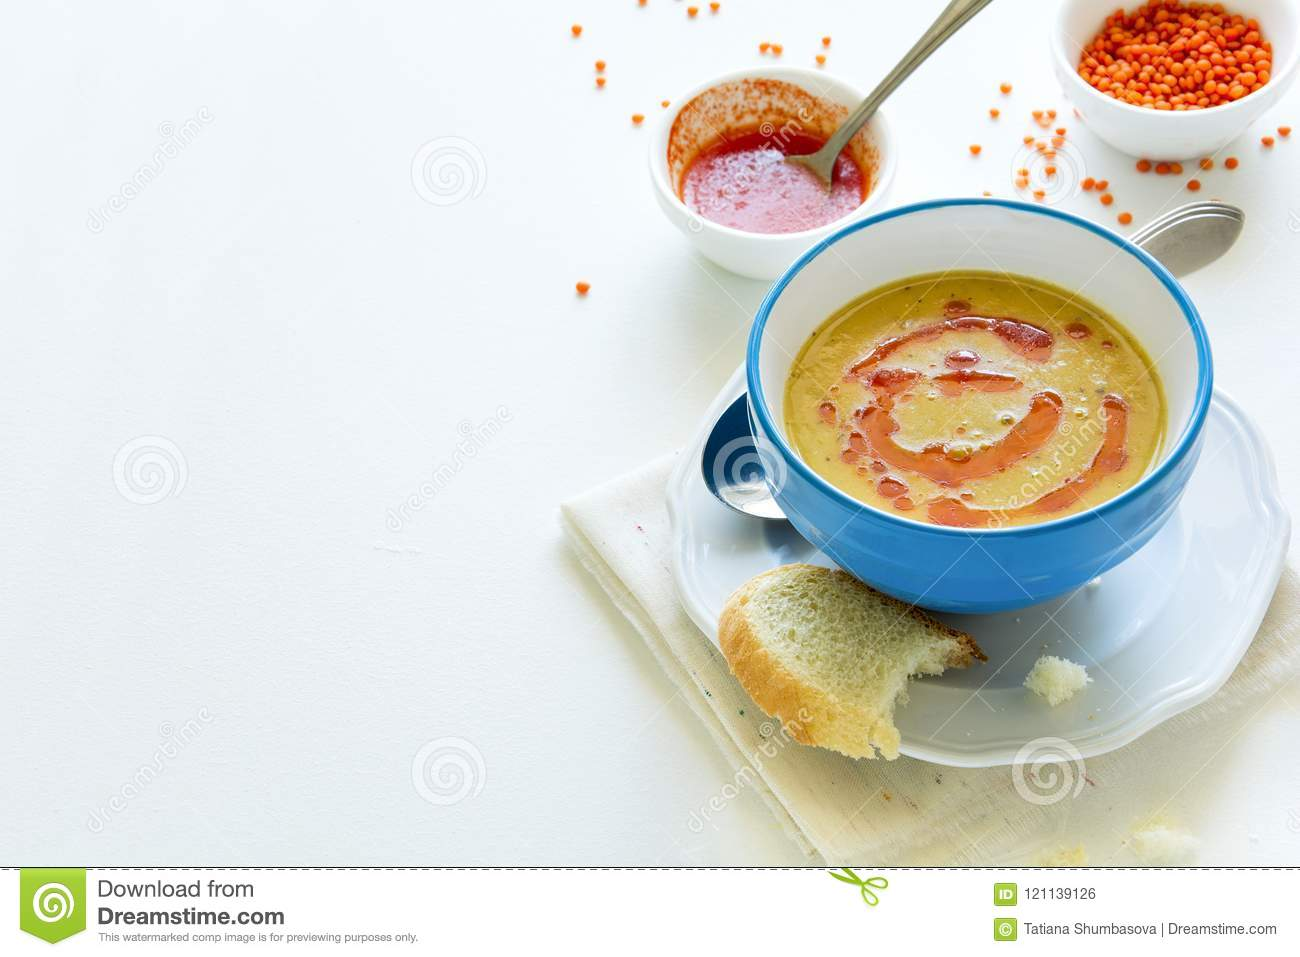 Red lentil soup with chilli pepper sauce and bread on white wooden table